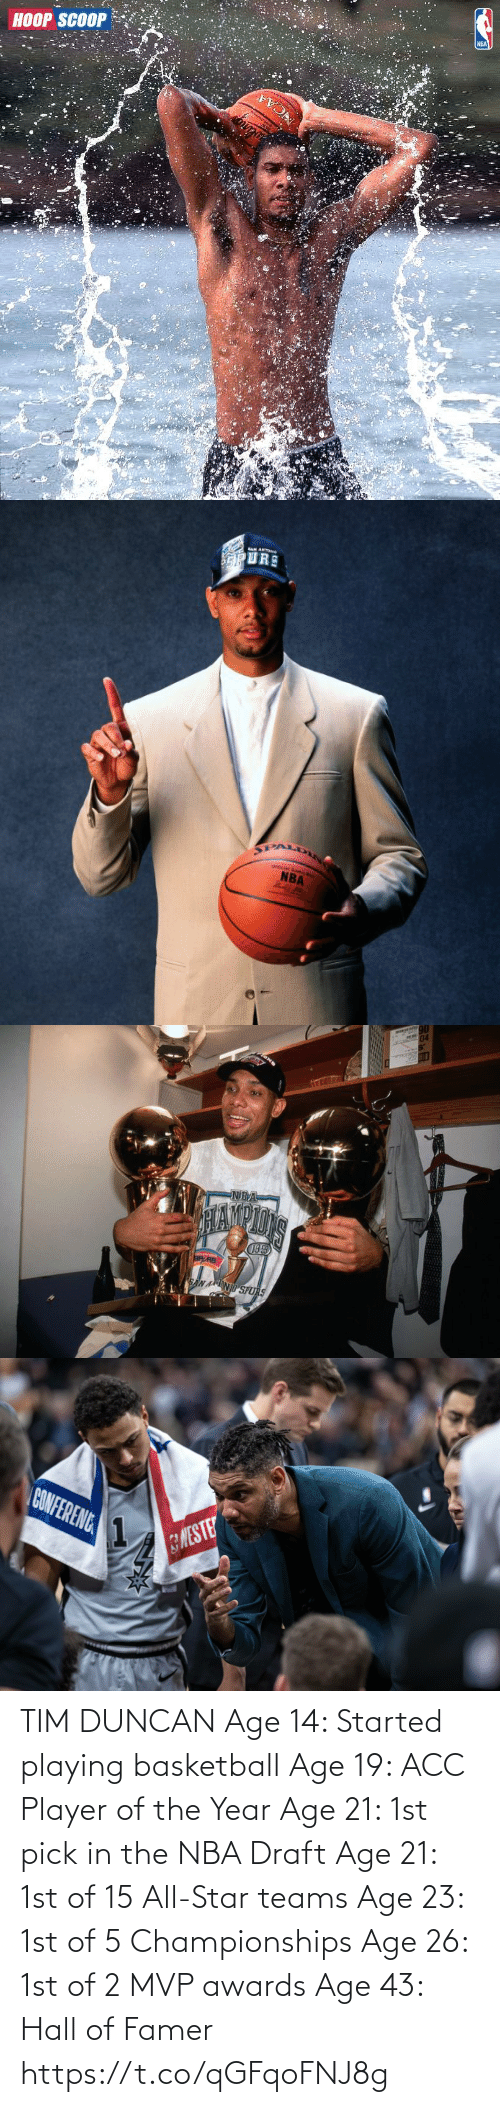 All Star: TIM DUNCAN  Age 14: Started playing basketball Age 19: ACC Player of the Year Age 21: 1st pick in the NBA Draft Age 21: 1st of 15 All-Star teams Age 23: 1st of 5 Championships Age 26: 1st of 2 MVP awards Age 43: Hall of Famer https://t.co/qGFqoFNJ8g